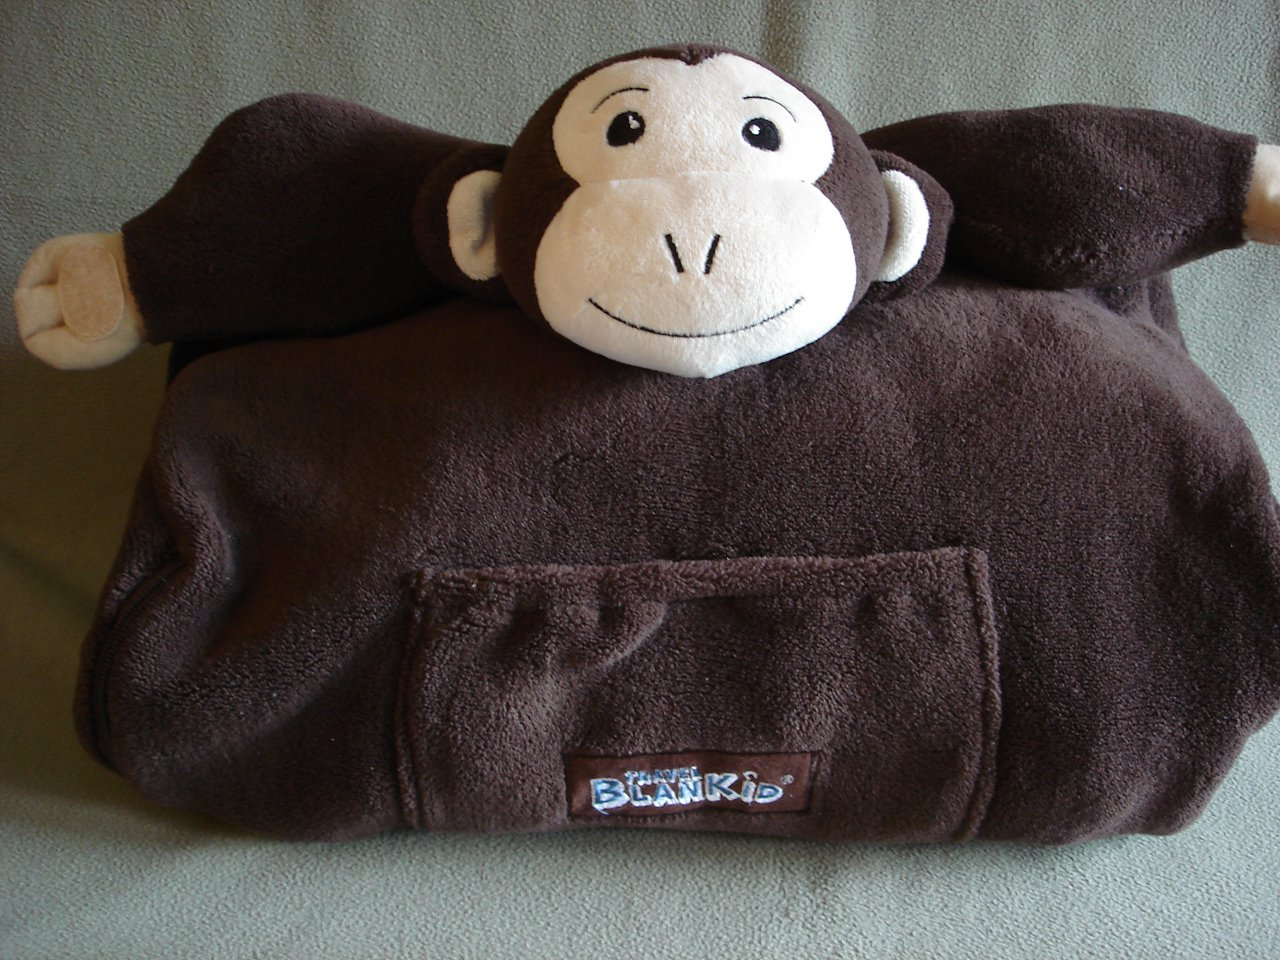 Animal Pillow With Blanket : Cabeau Travel BlanKid Buddy Makemba Monkey Backpack, Blanket, Pillow, & Animal